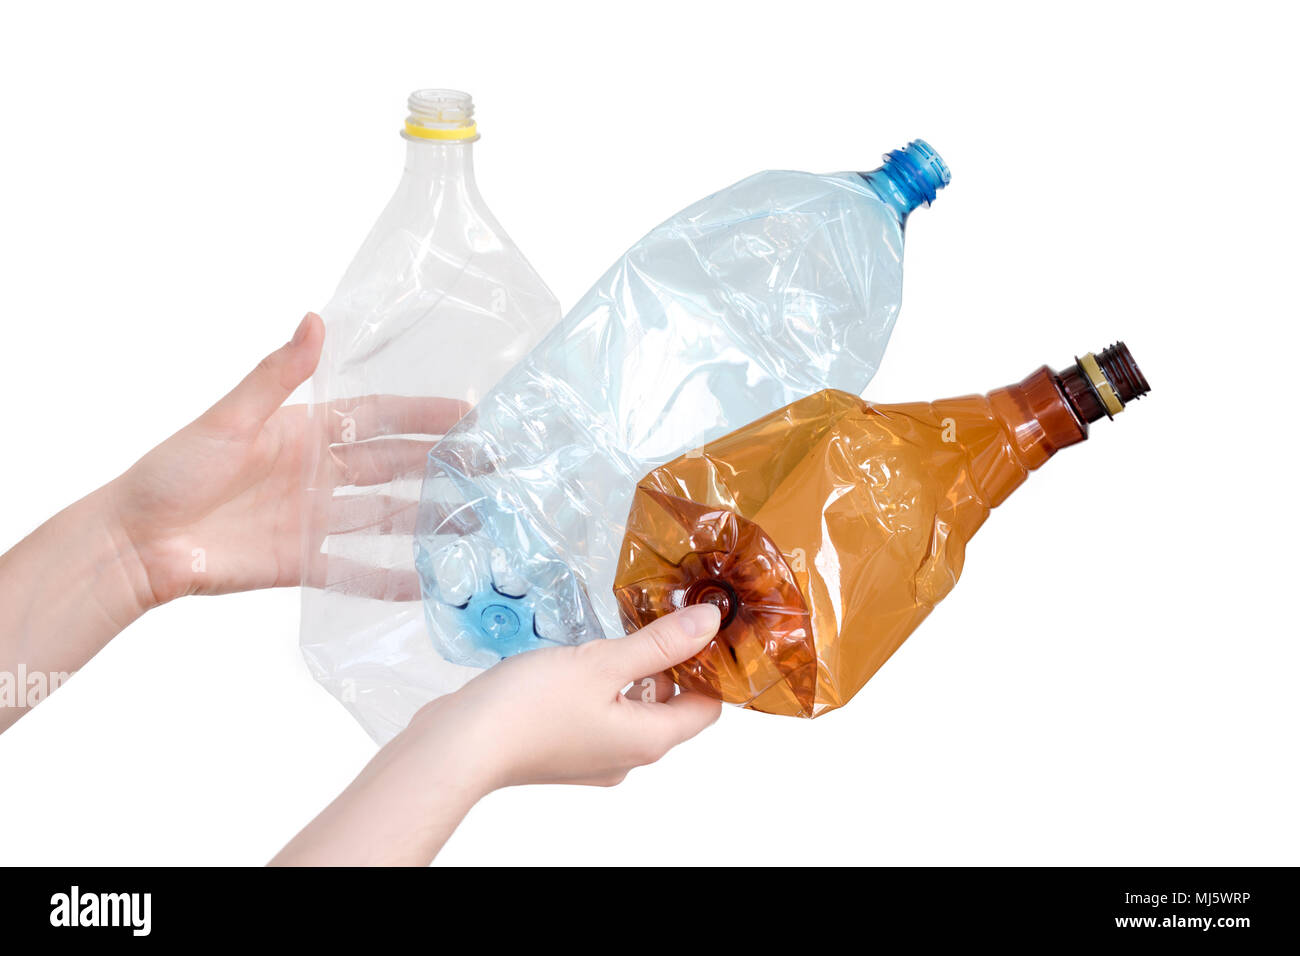 Female hands holding different types of crushed plastic bottles isolated on white. Recyclable waste. Recycling, reuse, garbage disposal, resources, environment and ecology concept - Stock Image